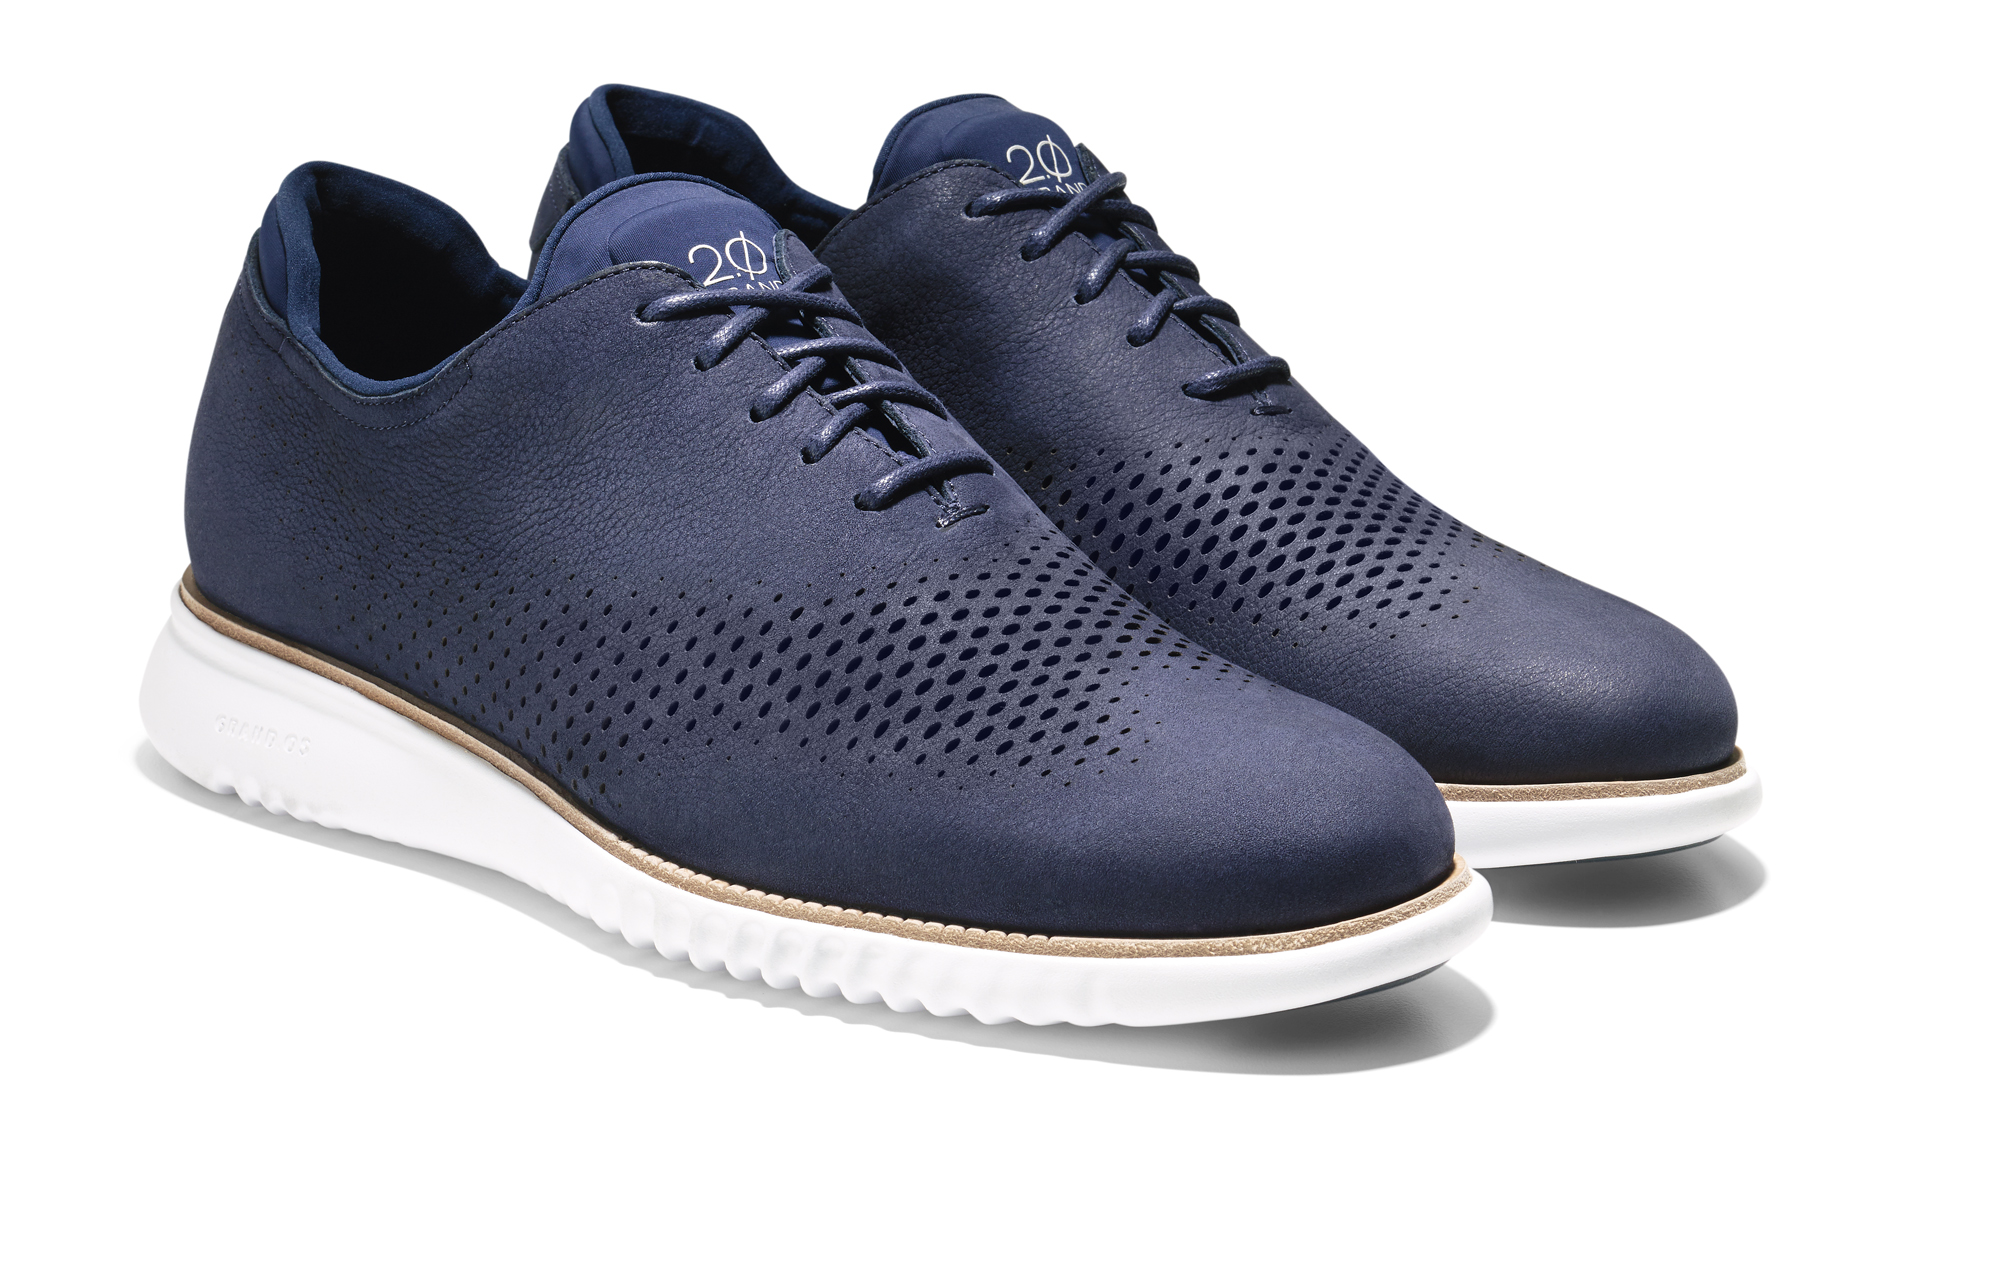 Cole Haan_2. ZERØGRAND Wing Oxford_Marine Blue Nubuck